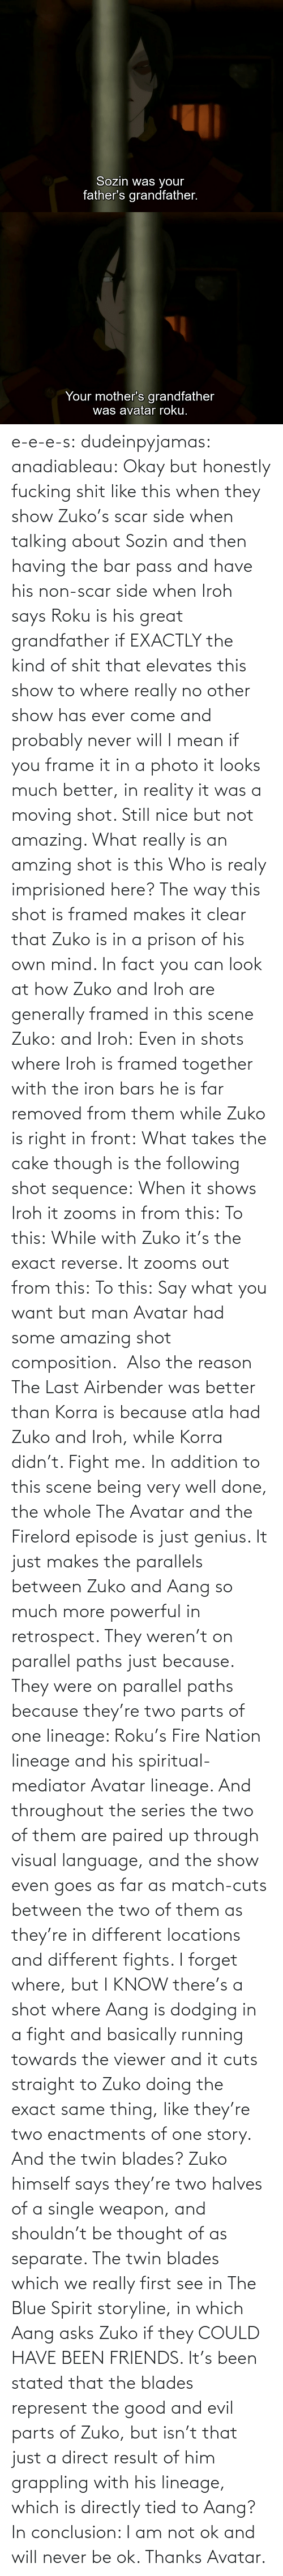 show: e-e-e-s: dudeinpyjamas:   anadiableau: Okay but honestly fucking shit like this when they show Zuko's scar side when talking about Sozin and then having the bar pass and have his non-scar side when Iroh says Roku is his great grandfather if EXACTLY the kind of shit that elevates this show to where really no other show has ever come and probably never will I mean if you frame it in a photo it looks much better, in reality it was a moving shot. Still nice but not amazing. What really is an amzing shot is this Who is realy imprisioned here? The way this shot is framed makes it clear that Zuko is in a prison of his own mind. In fact you can look at how Zuko and Iroh are generally framed in this scene Zuko: and Iroh: Even in shots where Iroh is framed together with the iron bars he is far removed from them while Zuko is right in front:  What takes the cake though is the following shot sequence: When it shows Iroh it zooms in from this: To this: While with Zuko it's the exact reverse. It zooms out from this: To this: Say what you want but man Avatar had some amazing shot composition.   Also the reason The Last Airbender was better than Korra is because atla had Zuko and Iroh, while Korra didn't. Fight me.    In addition to this scene being very well done, the whole The Avatar and the Firelord episode is just genius.  It just makes the parallels between Zuko and Aang so much more powerful in retrospect.  They weren't on parallel paths just because.  They were on parallel paths because they're two parts of one lineage: Roku's Fire Nation lineage and his spiritual-mediator Avatar lineage.  And throughout the series the two of them are paired up through visual language, and the show even goes as far as match-cuts between the two of them as they're in different locations and different fights.  I forget where, but I KNOW there's a shot where Aang is dodging in a fight and basically running towards the viewer and it cuts straight to Zuko doing the exact same thing, like they're two enactments of one story.   And the twin blades?  Zuko himself says they're two halves of a single weapon, and shouldn't be thought of as separate.  The twin blades which we really first see in The Blue Spirit storyline, in which Aang asks Zuko if they COULD HAVE BEEN FRIENDS.  It's been stated that the blades represent the good and evil parts of Zuko, but isn't that just a direct result of him grappling with his lineage, which is directly tied to Aang? In conclusion: I am not ok and will never be ok.  Thanks Avatar.